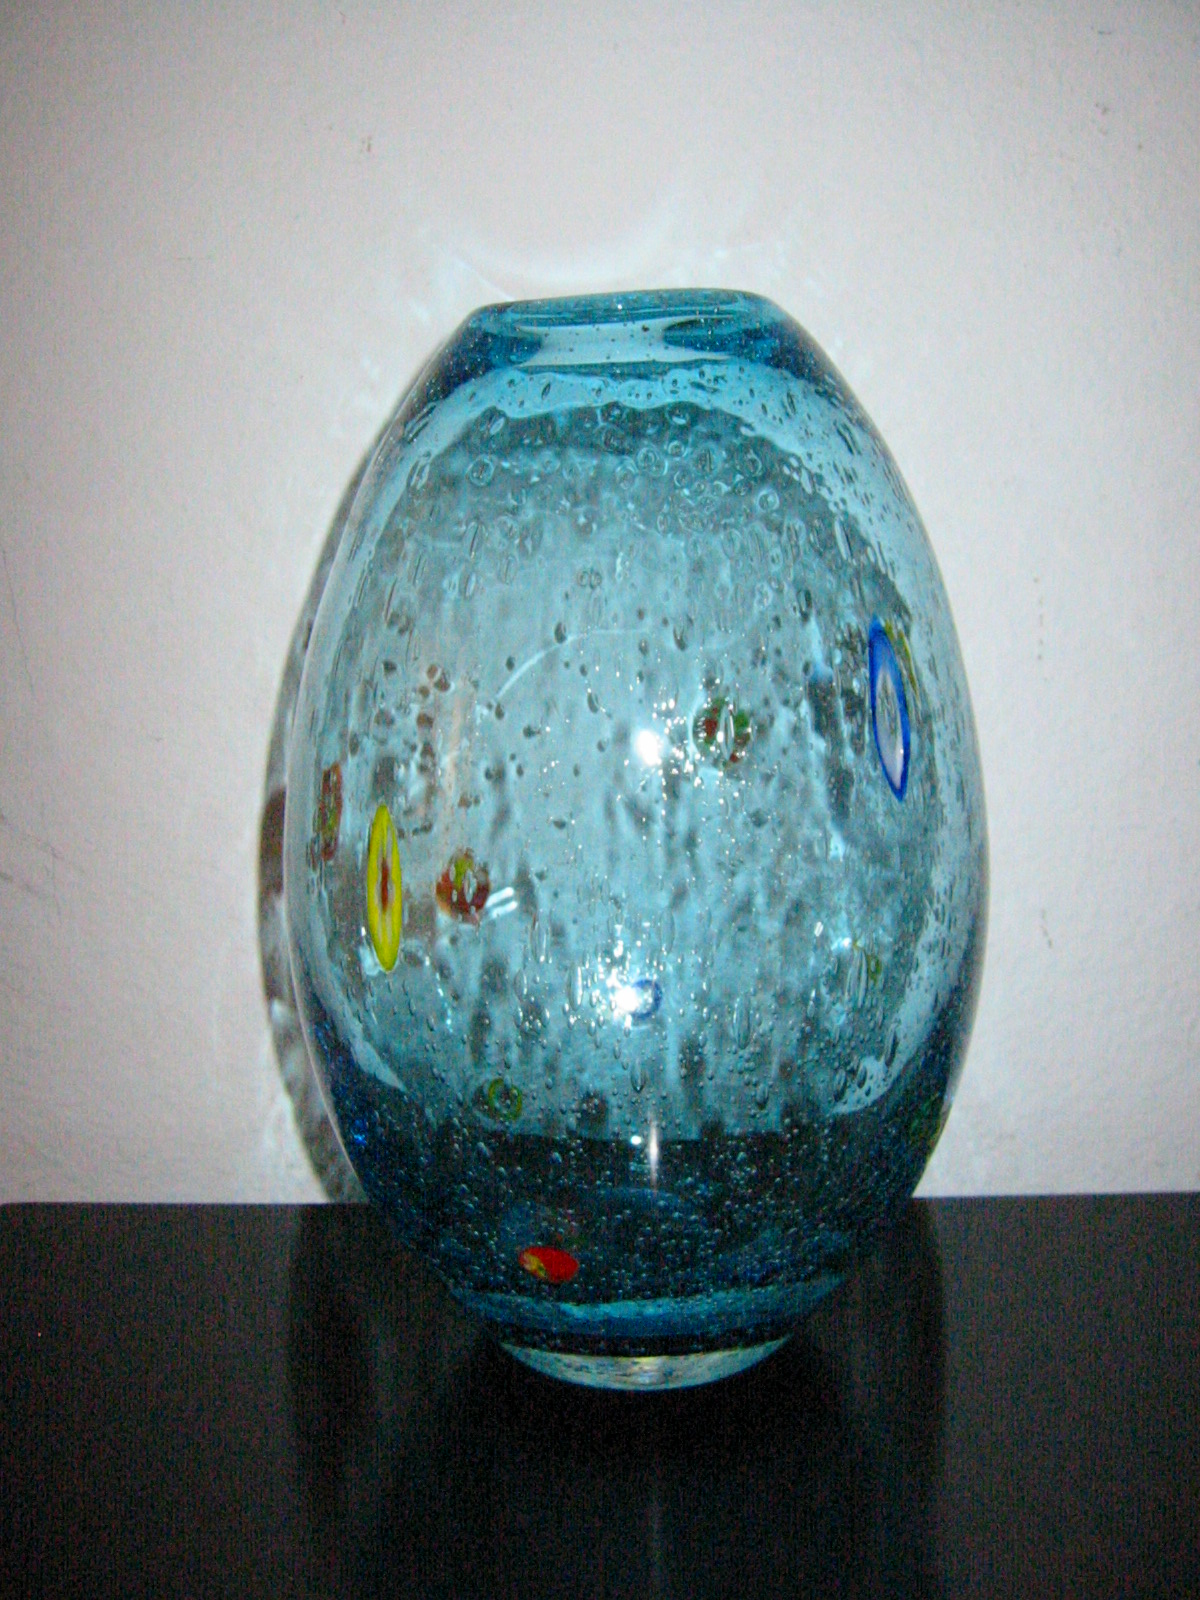 Margies garden hand blown glass vase for sale antiques margies garden hand blown glass vase for sale reviewsmspy